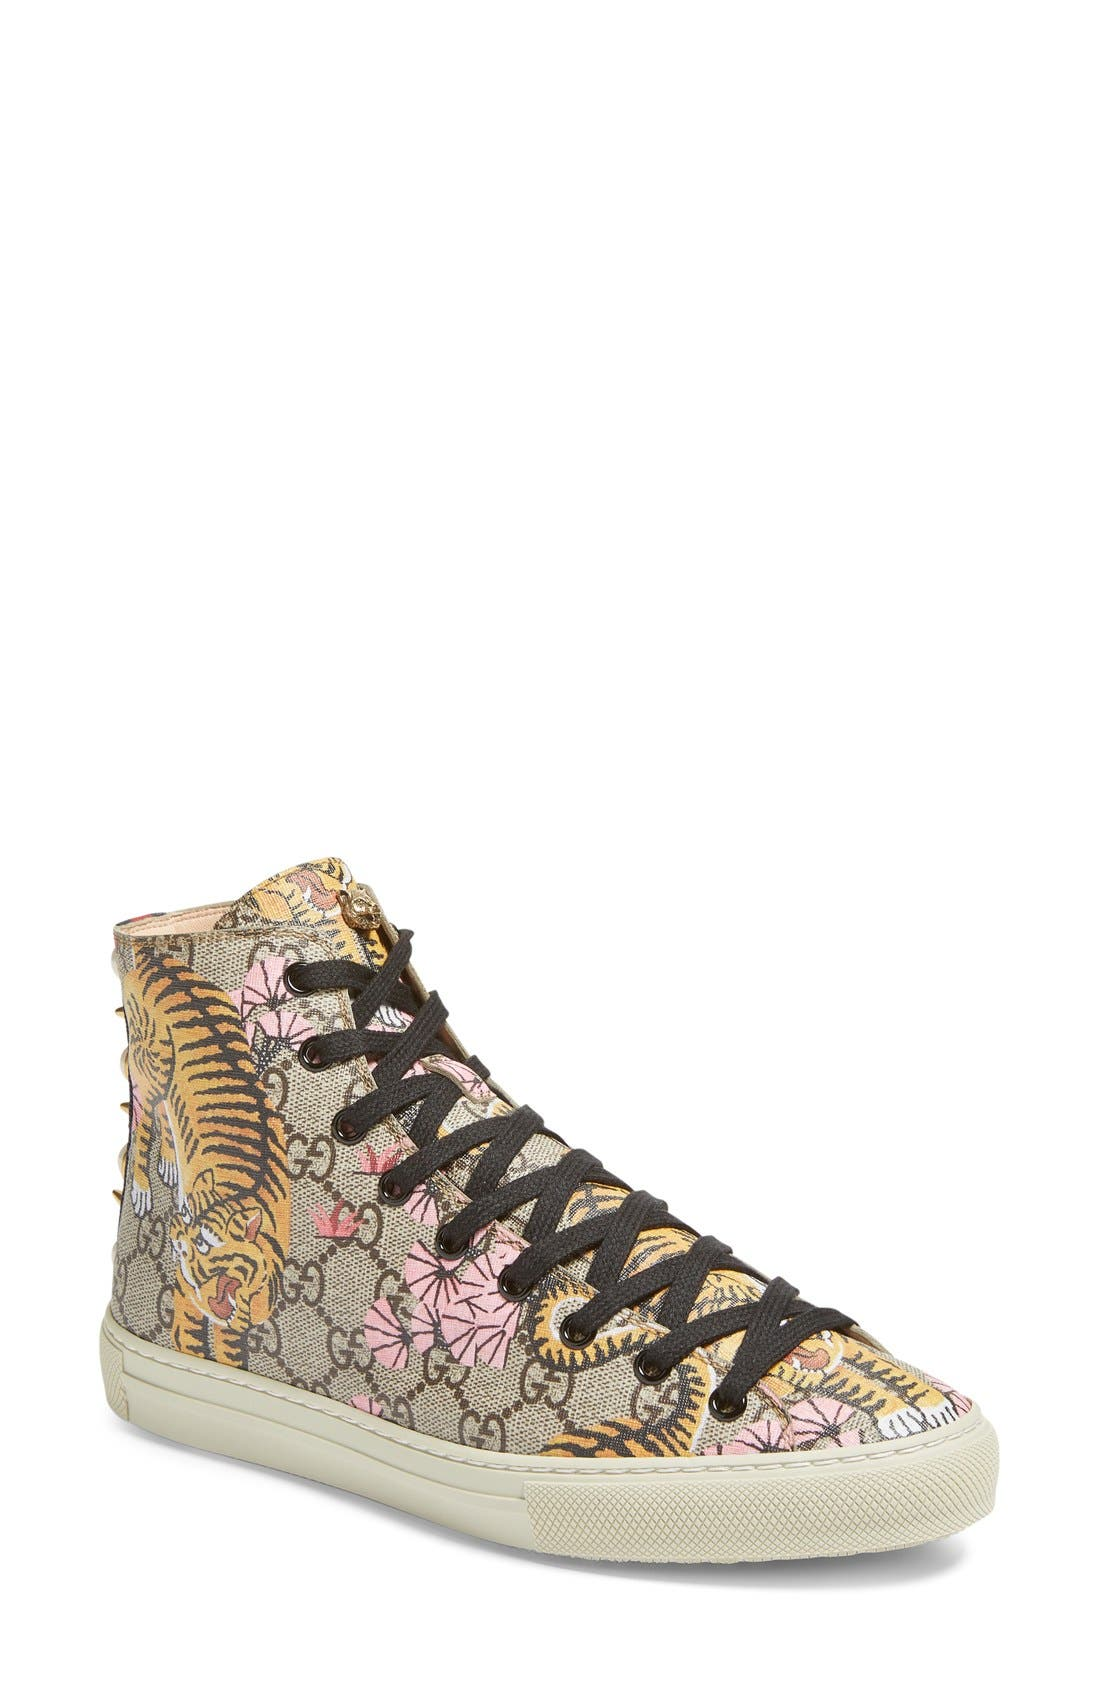 GUCCI Major Tiger High Top Sneaker